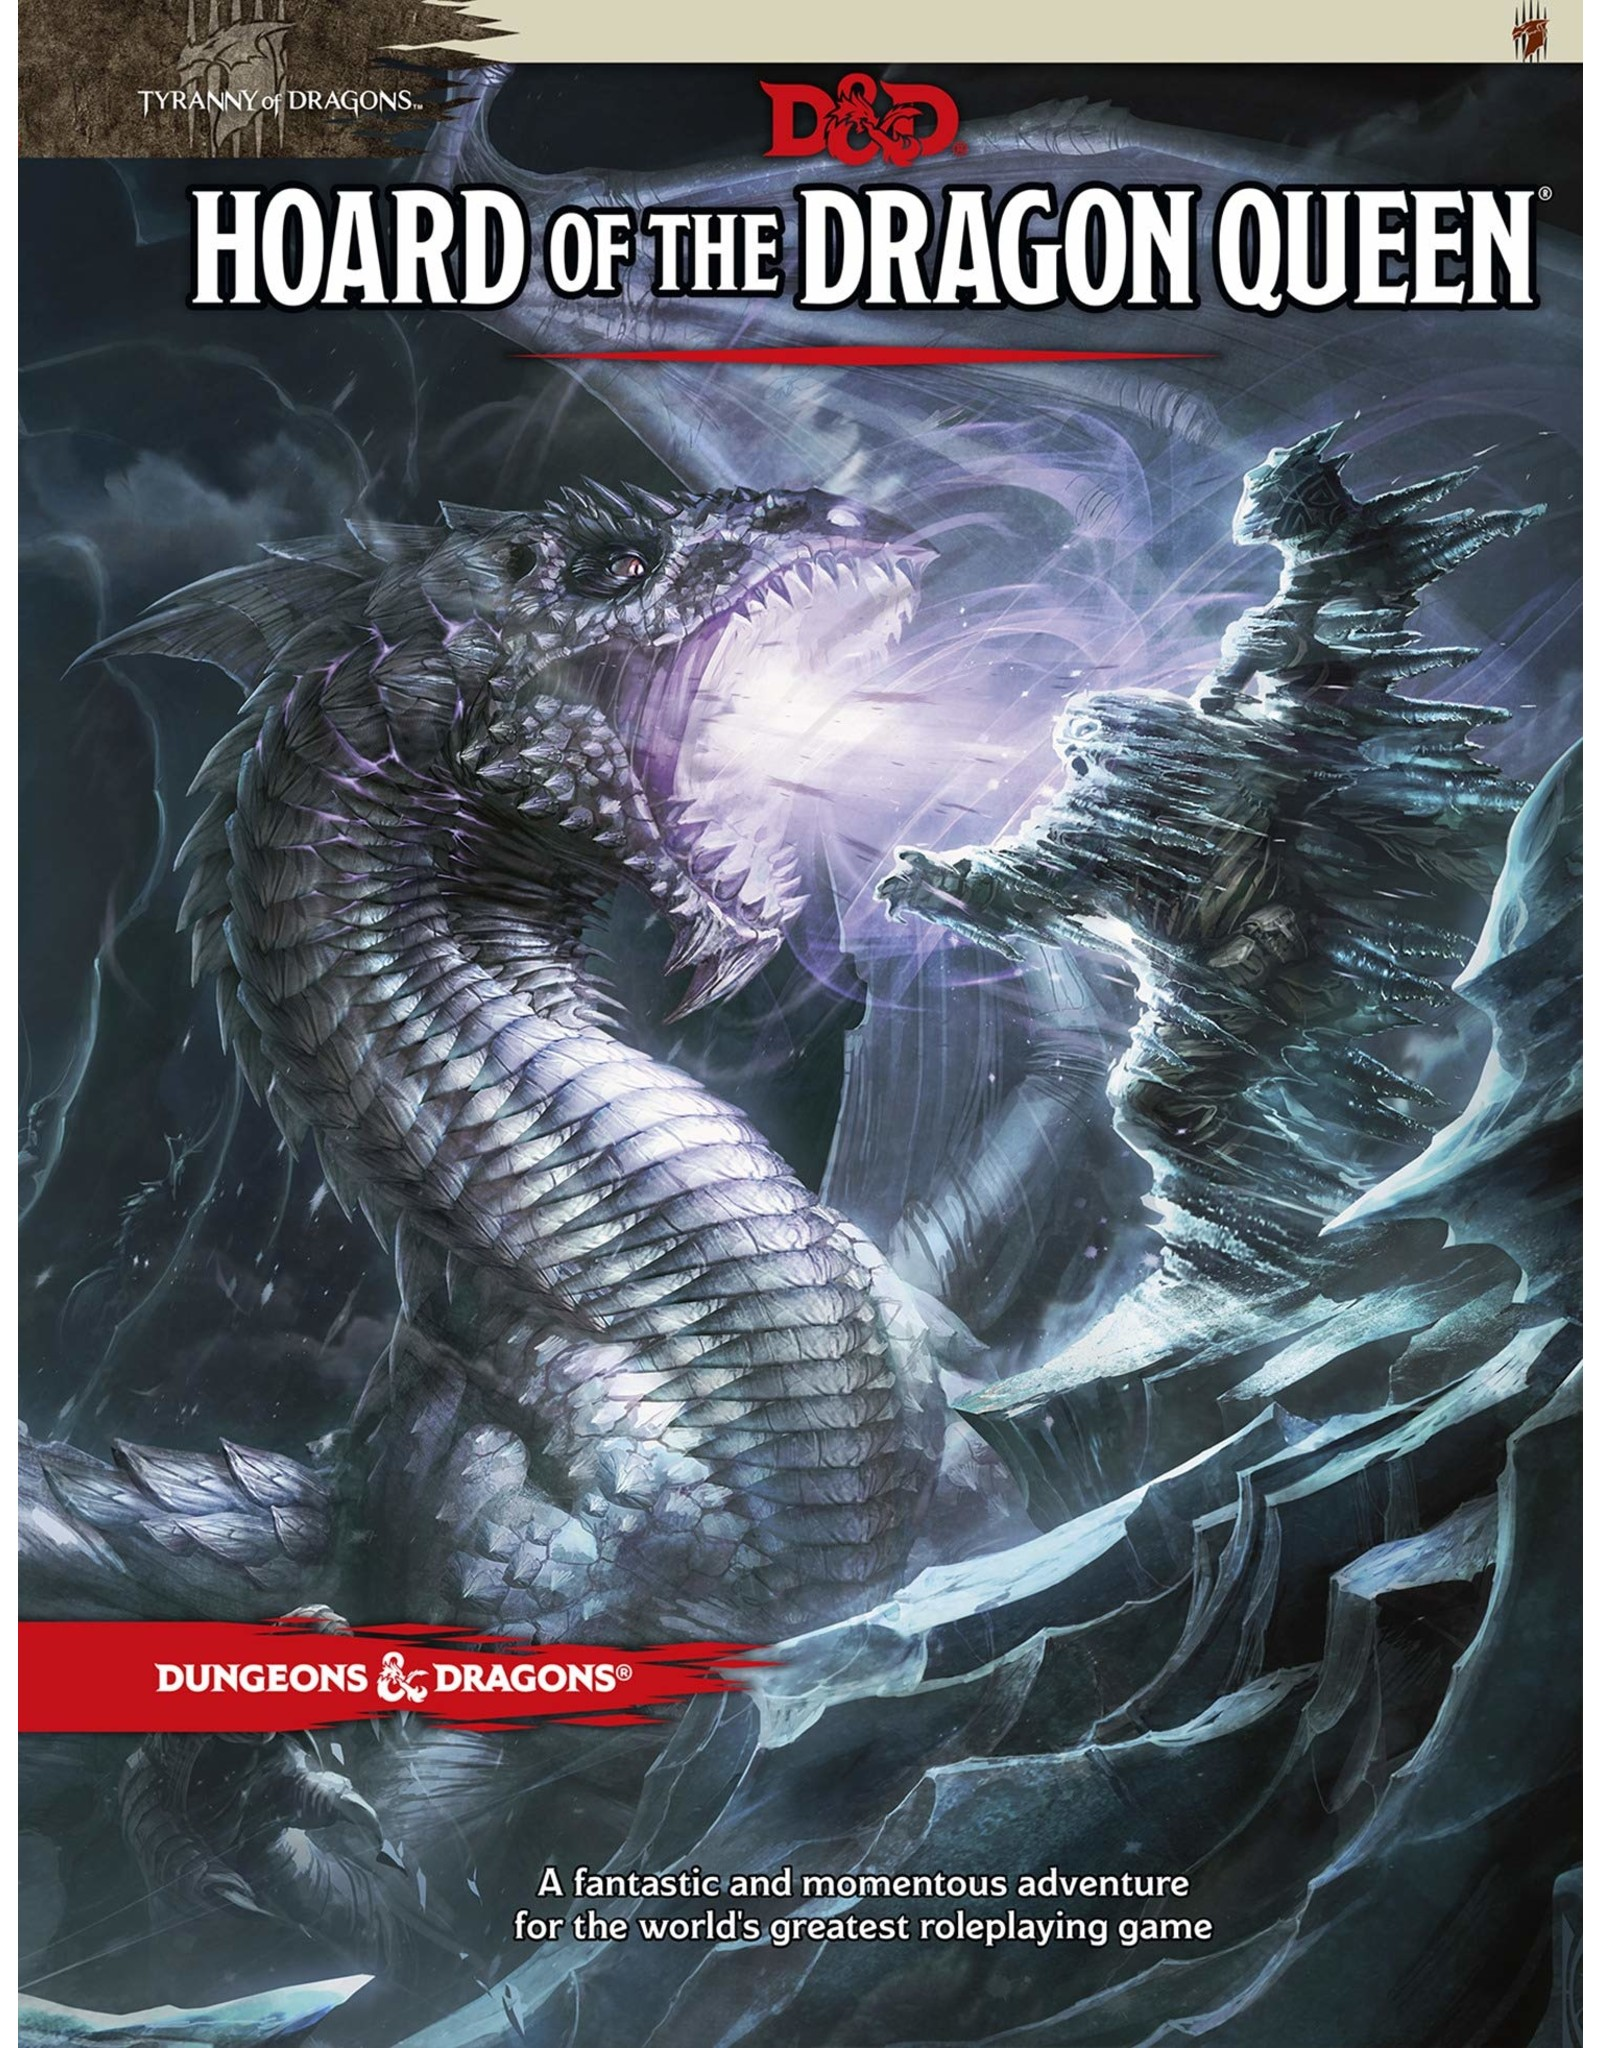 WIZARDS OF THE COAST DUNGEONS & DRAGONS RPG 5TH ED/NEXT HOARD OF THE DRAGON QUEEN